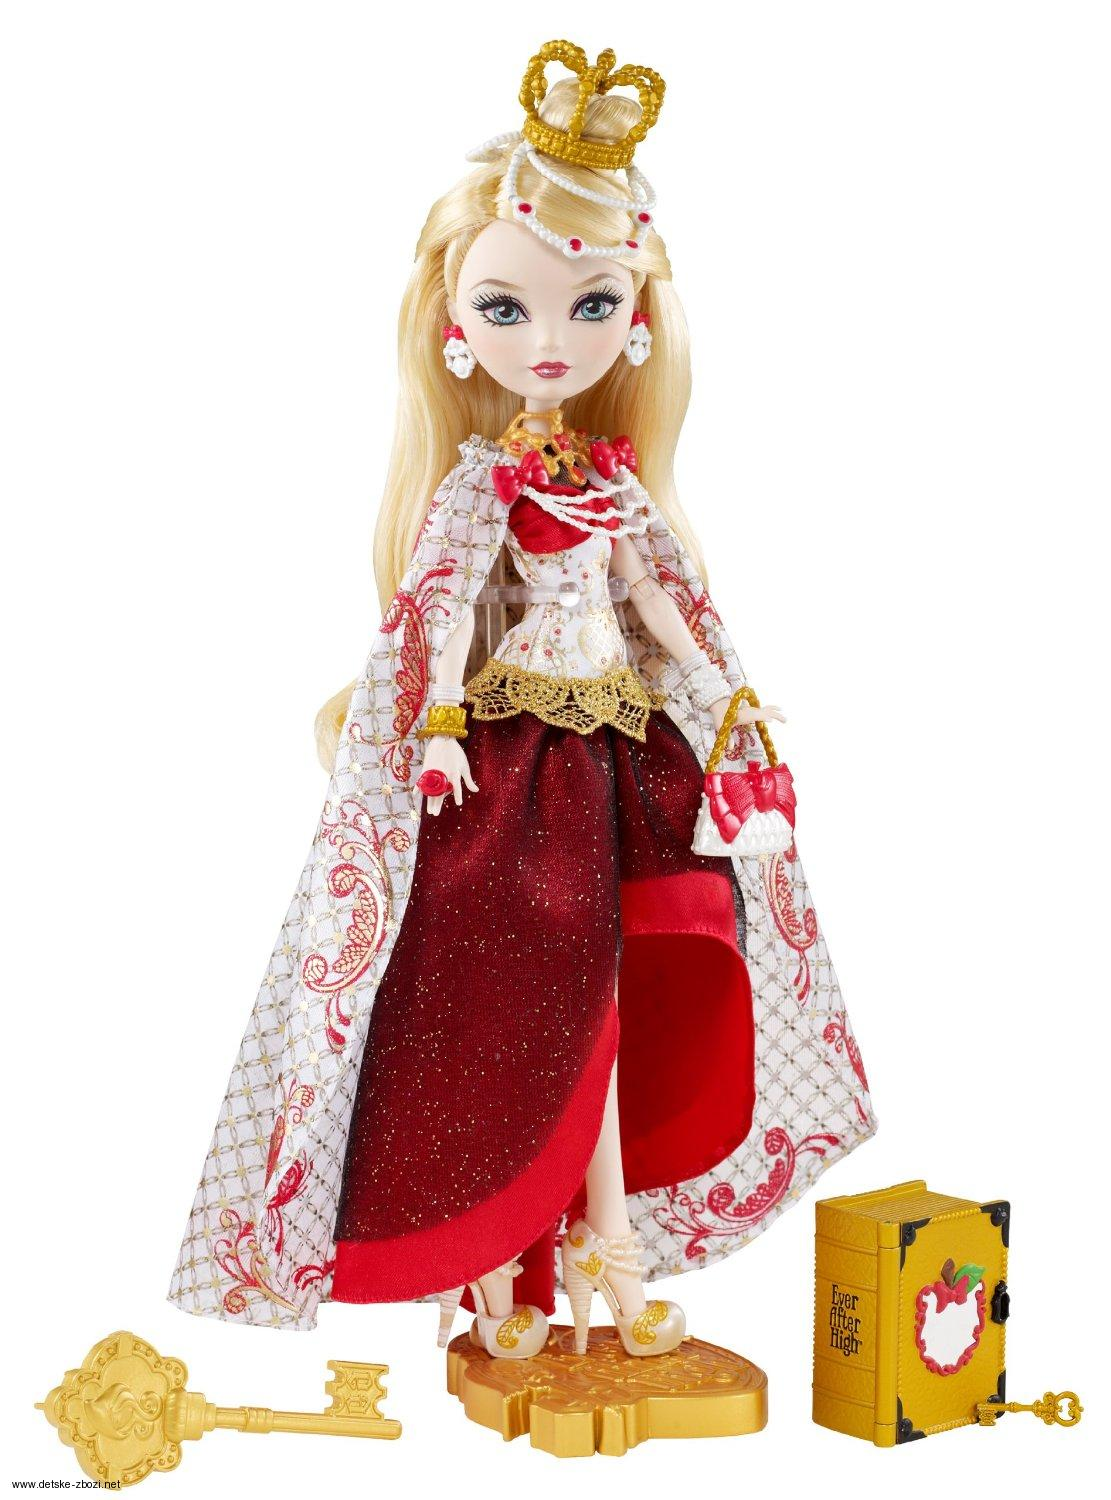 Mattel Ever After High Den dědictví Apple White panenka